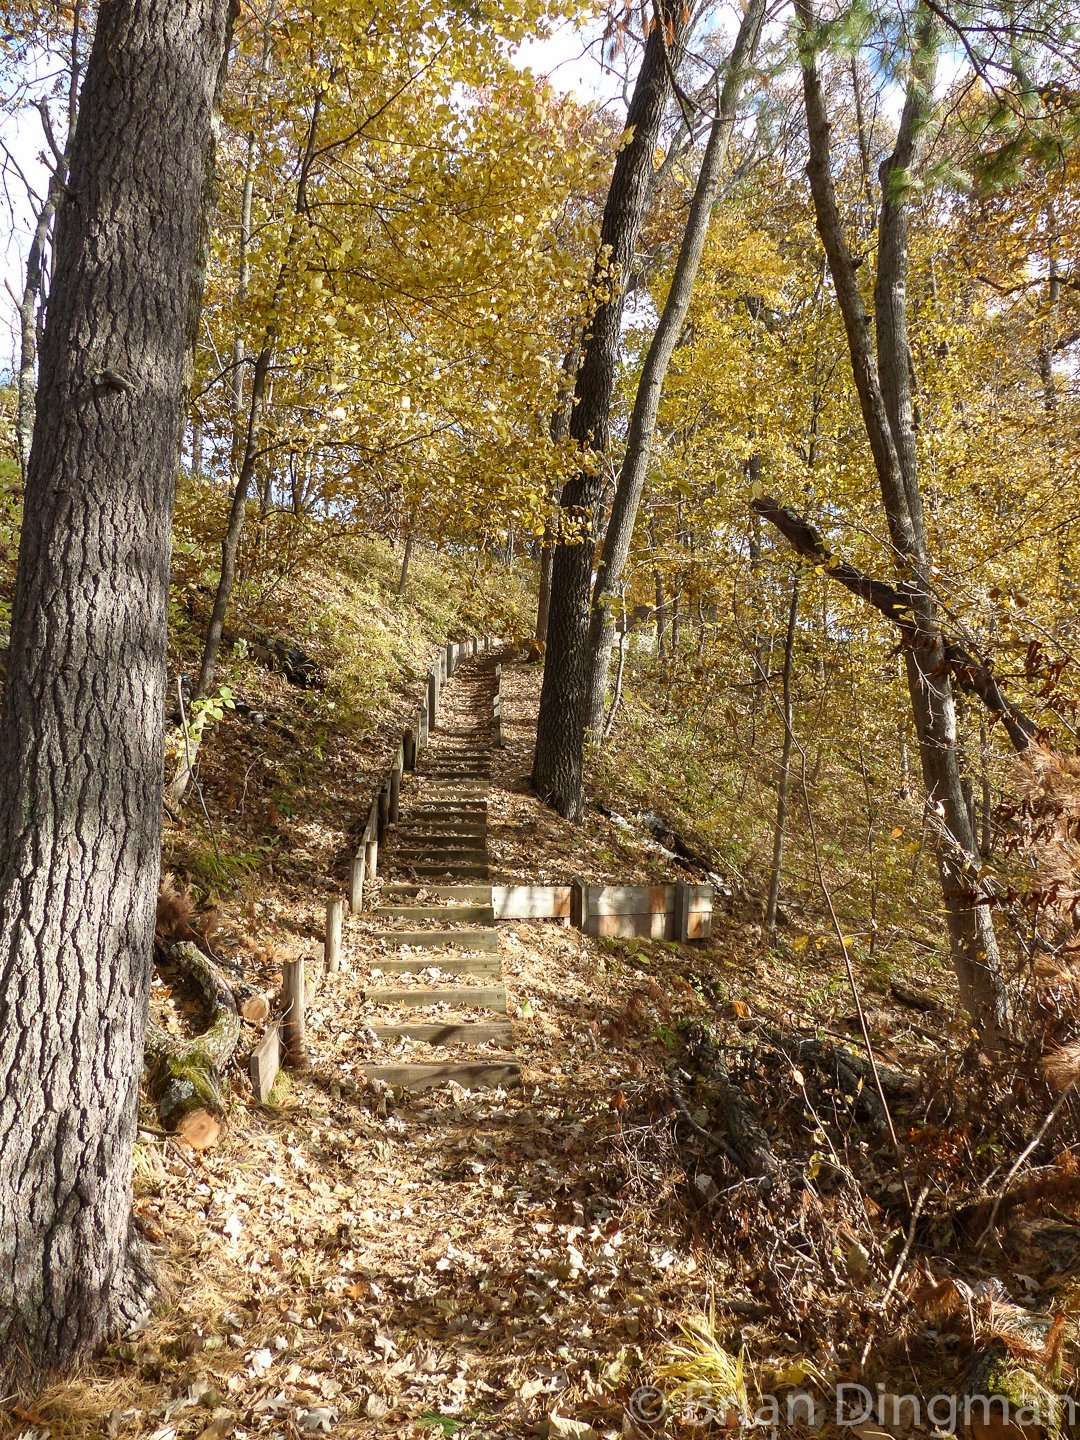 St. Croix State Park has 127 miles of hiking trails